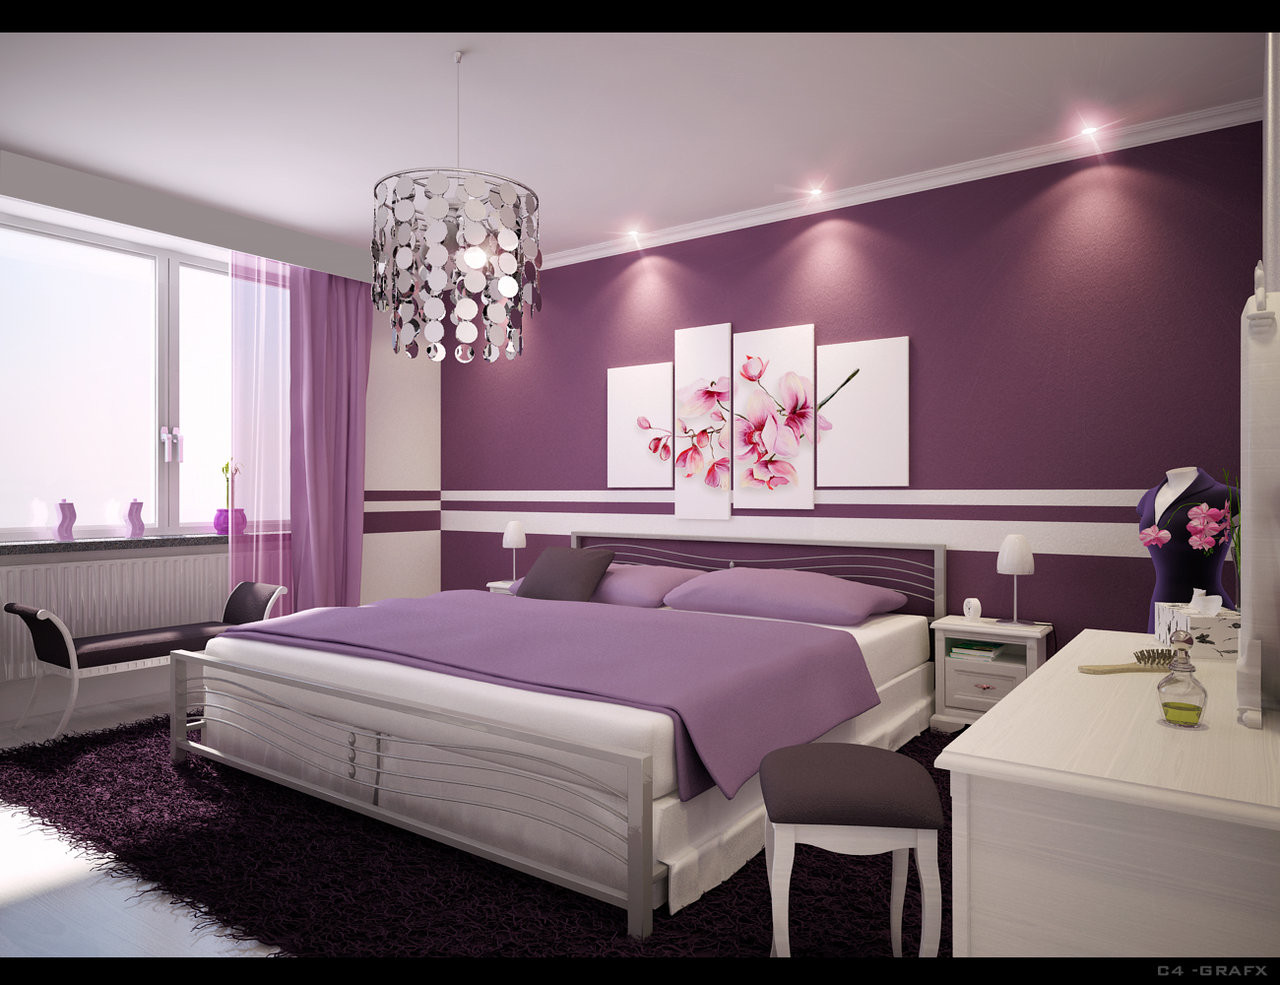 Best ideas about Bedroom Design Ideas . Save or Pin 25 Bedroom Design Ideas For Your Home Now.